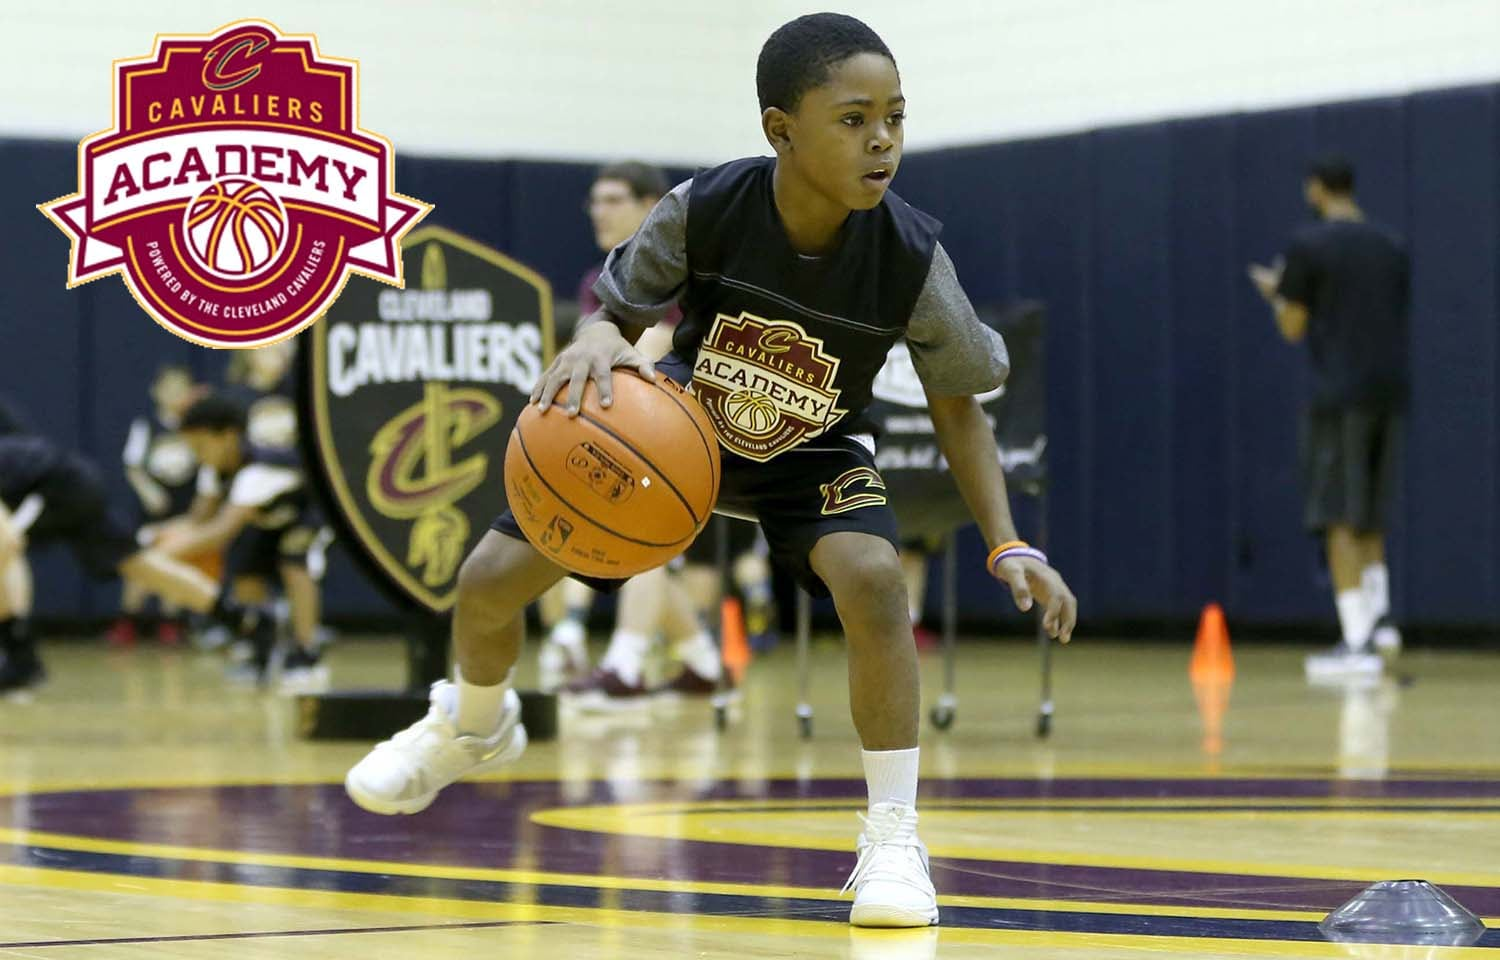 Cavs Academy Announces 2018 Youth Basketball Summer Camp Schedule